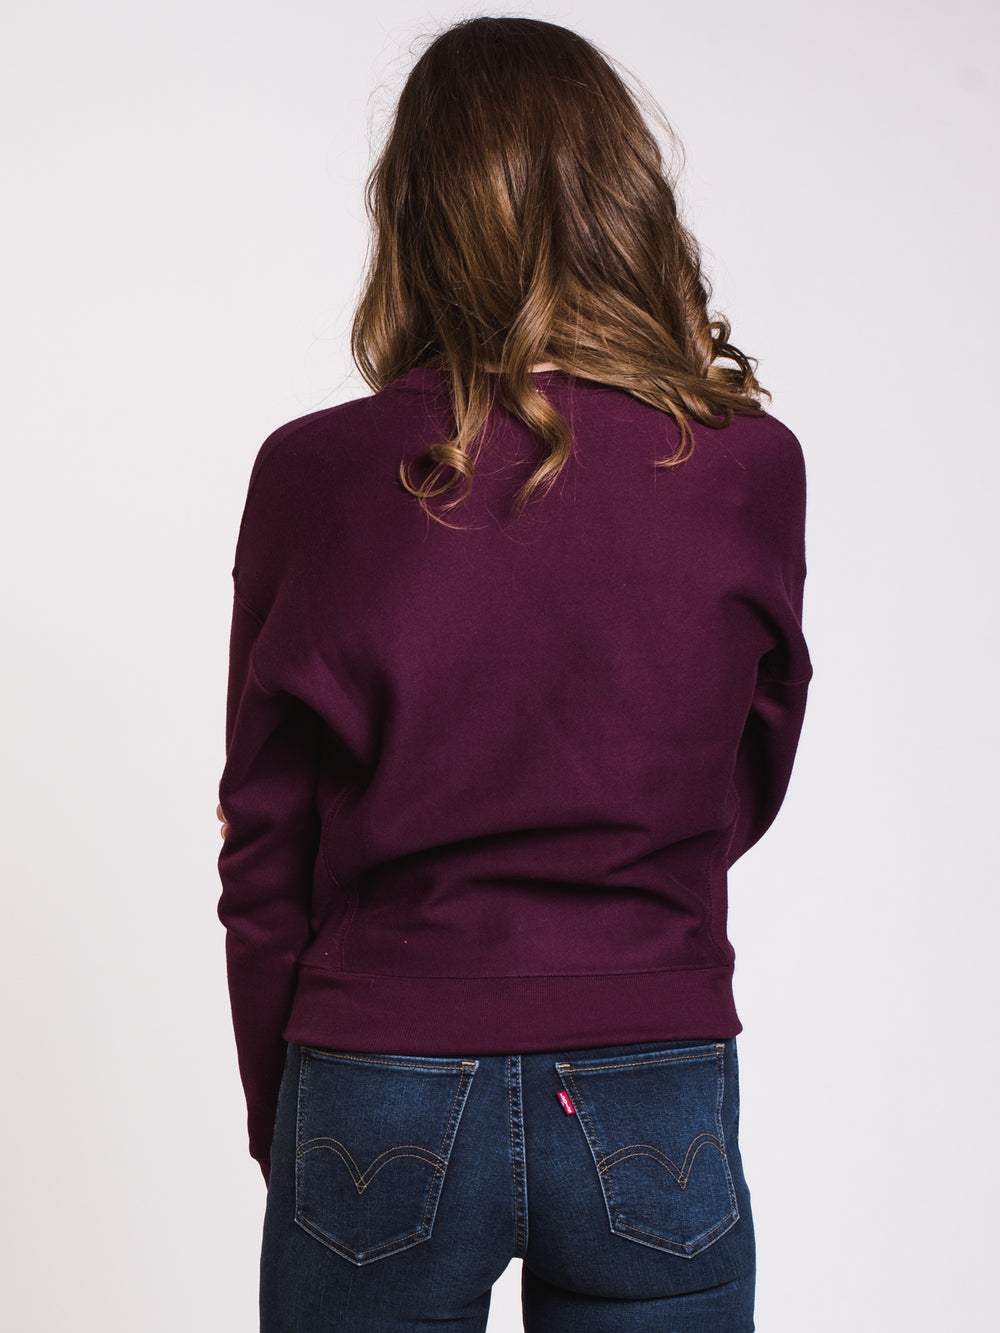 WOMENS REV WEAVE CREW - BERRY PURPLE